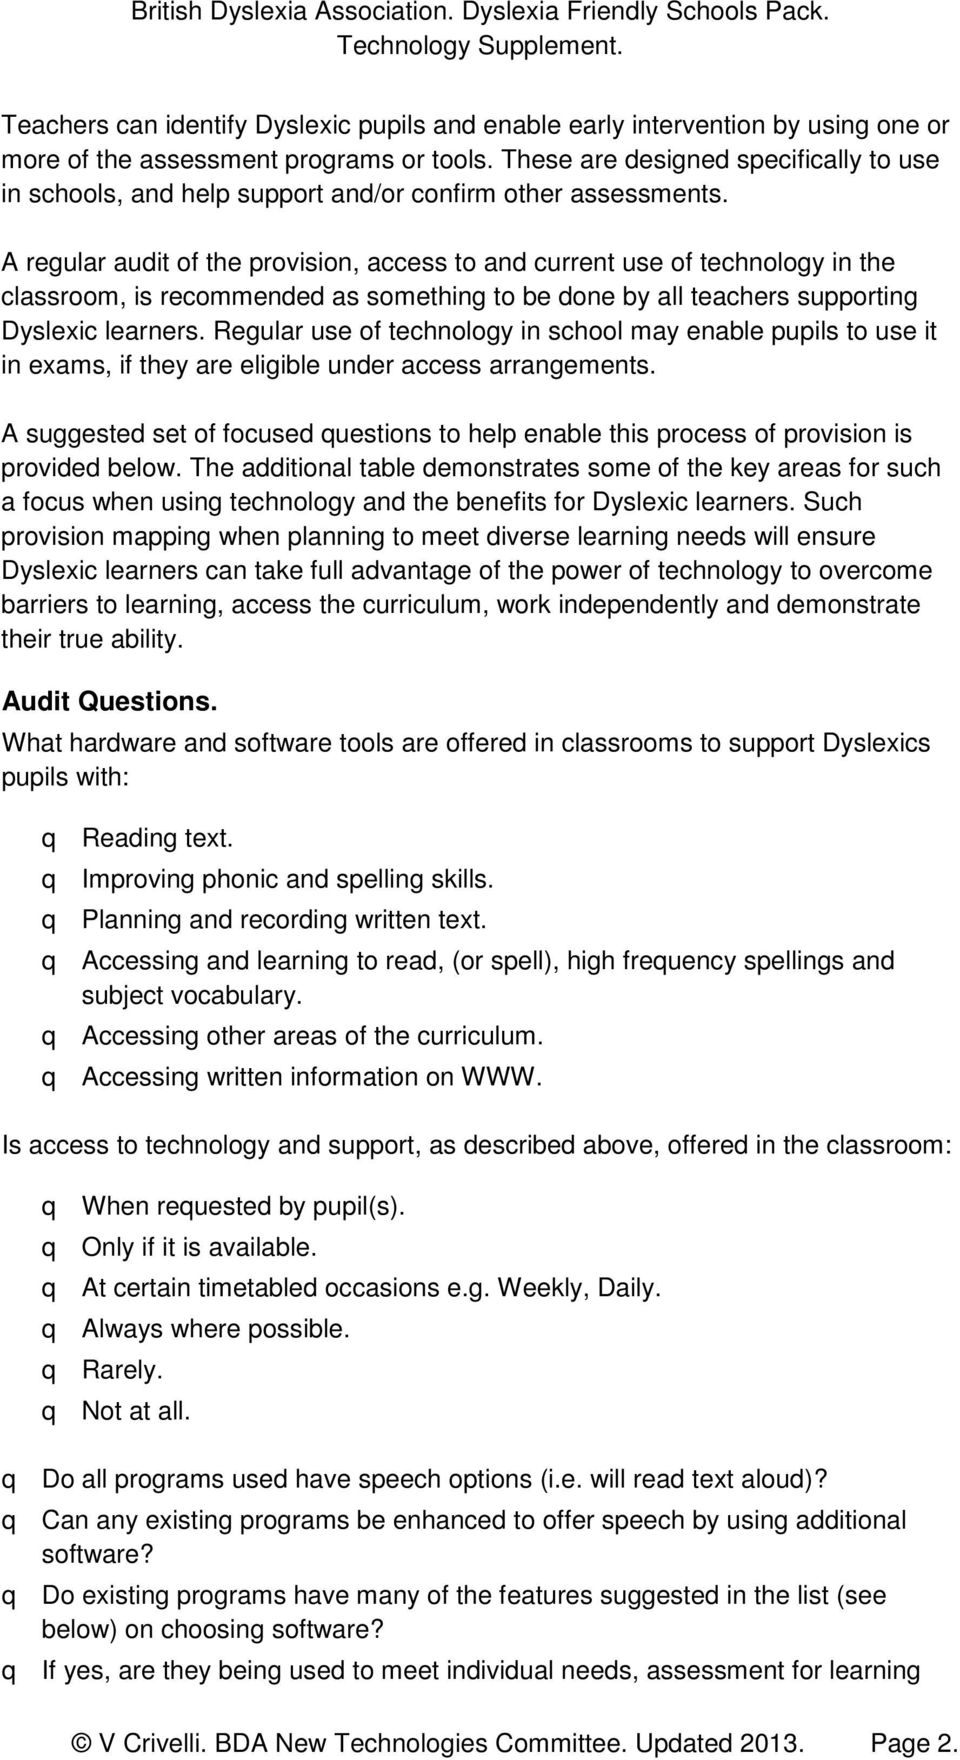 A regular audit of the provision, access to and current use of technology in the classroom, is recommended as something to be done by all teachers supporting Dyslexic learners.